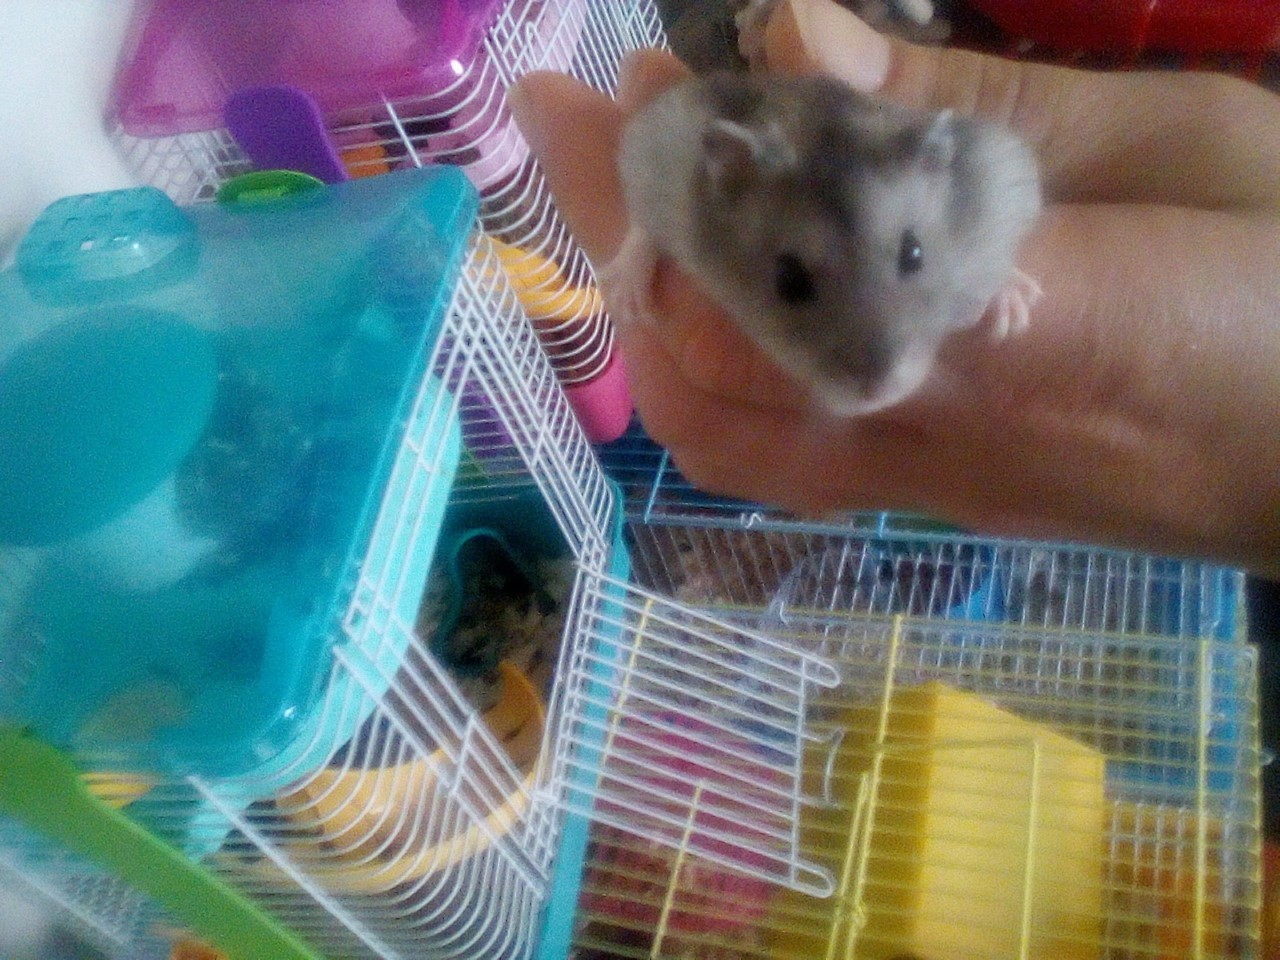 4 Russian Dwarf hamsters and their cages for sale